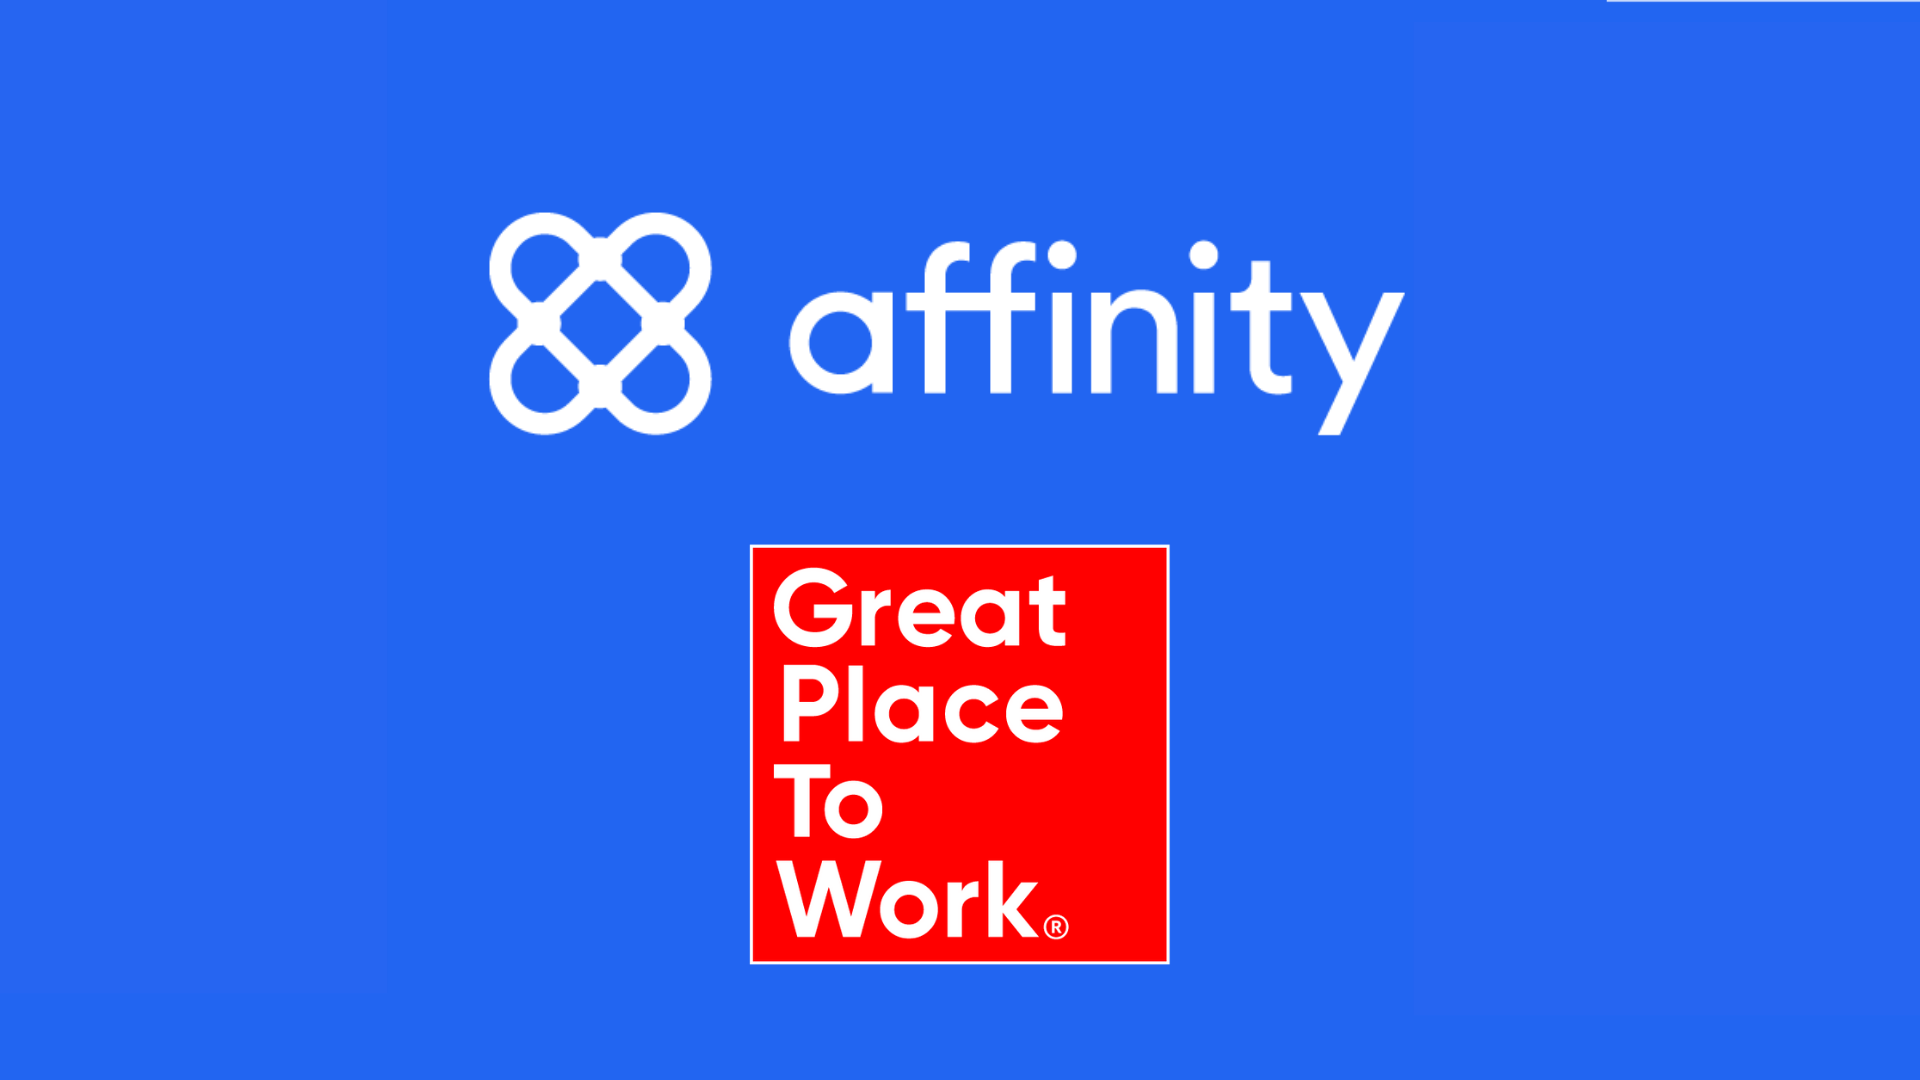 Affinity named in Fortune 2021 Best Workplaces in the Bay Area